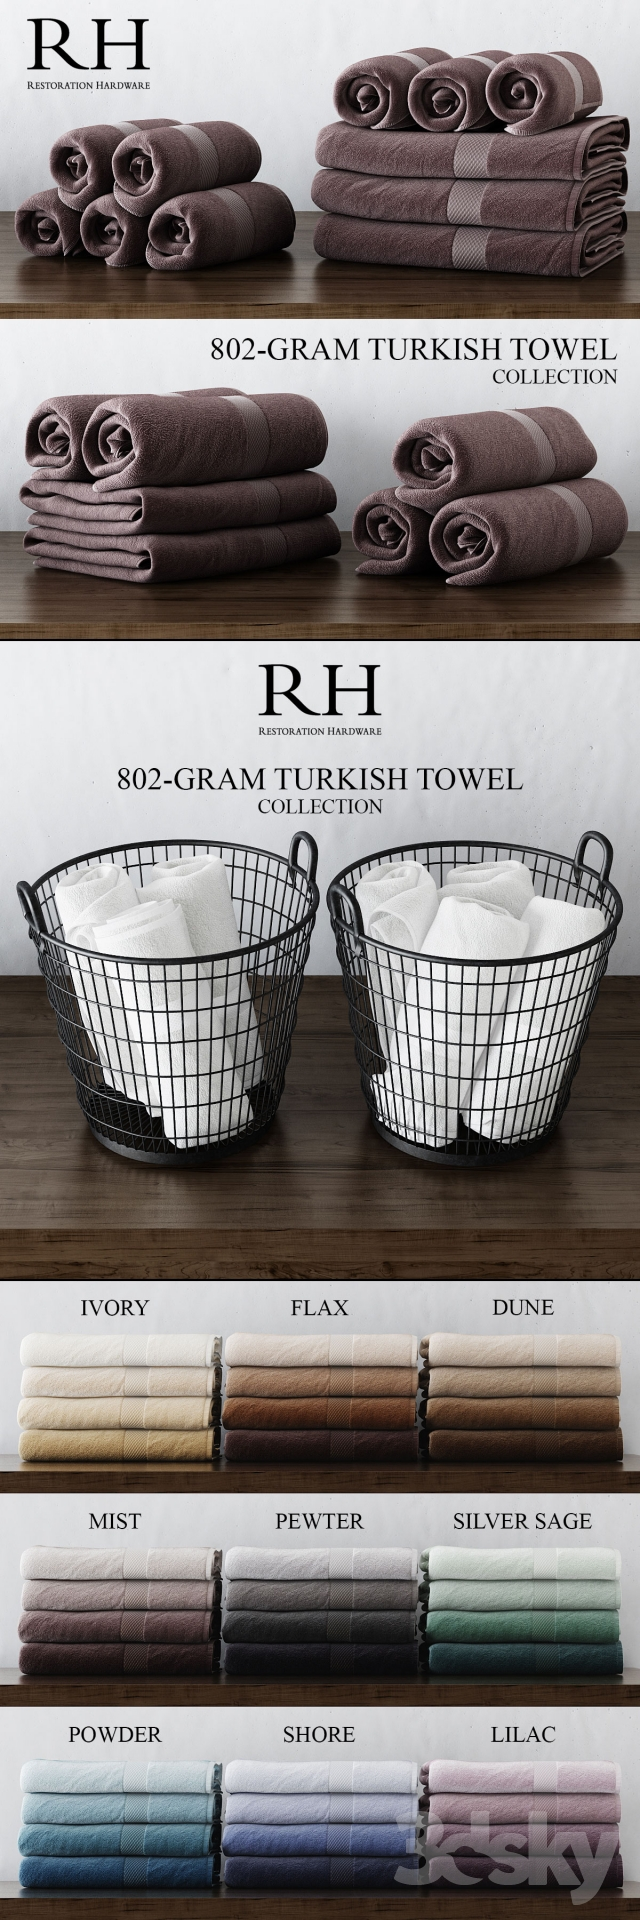 3d Models Bathroom Accessories Rh 802 Gram Turkish Towel Collection